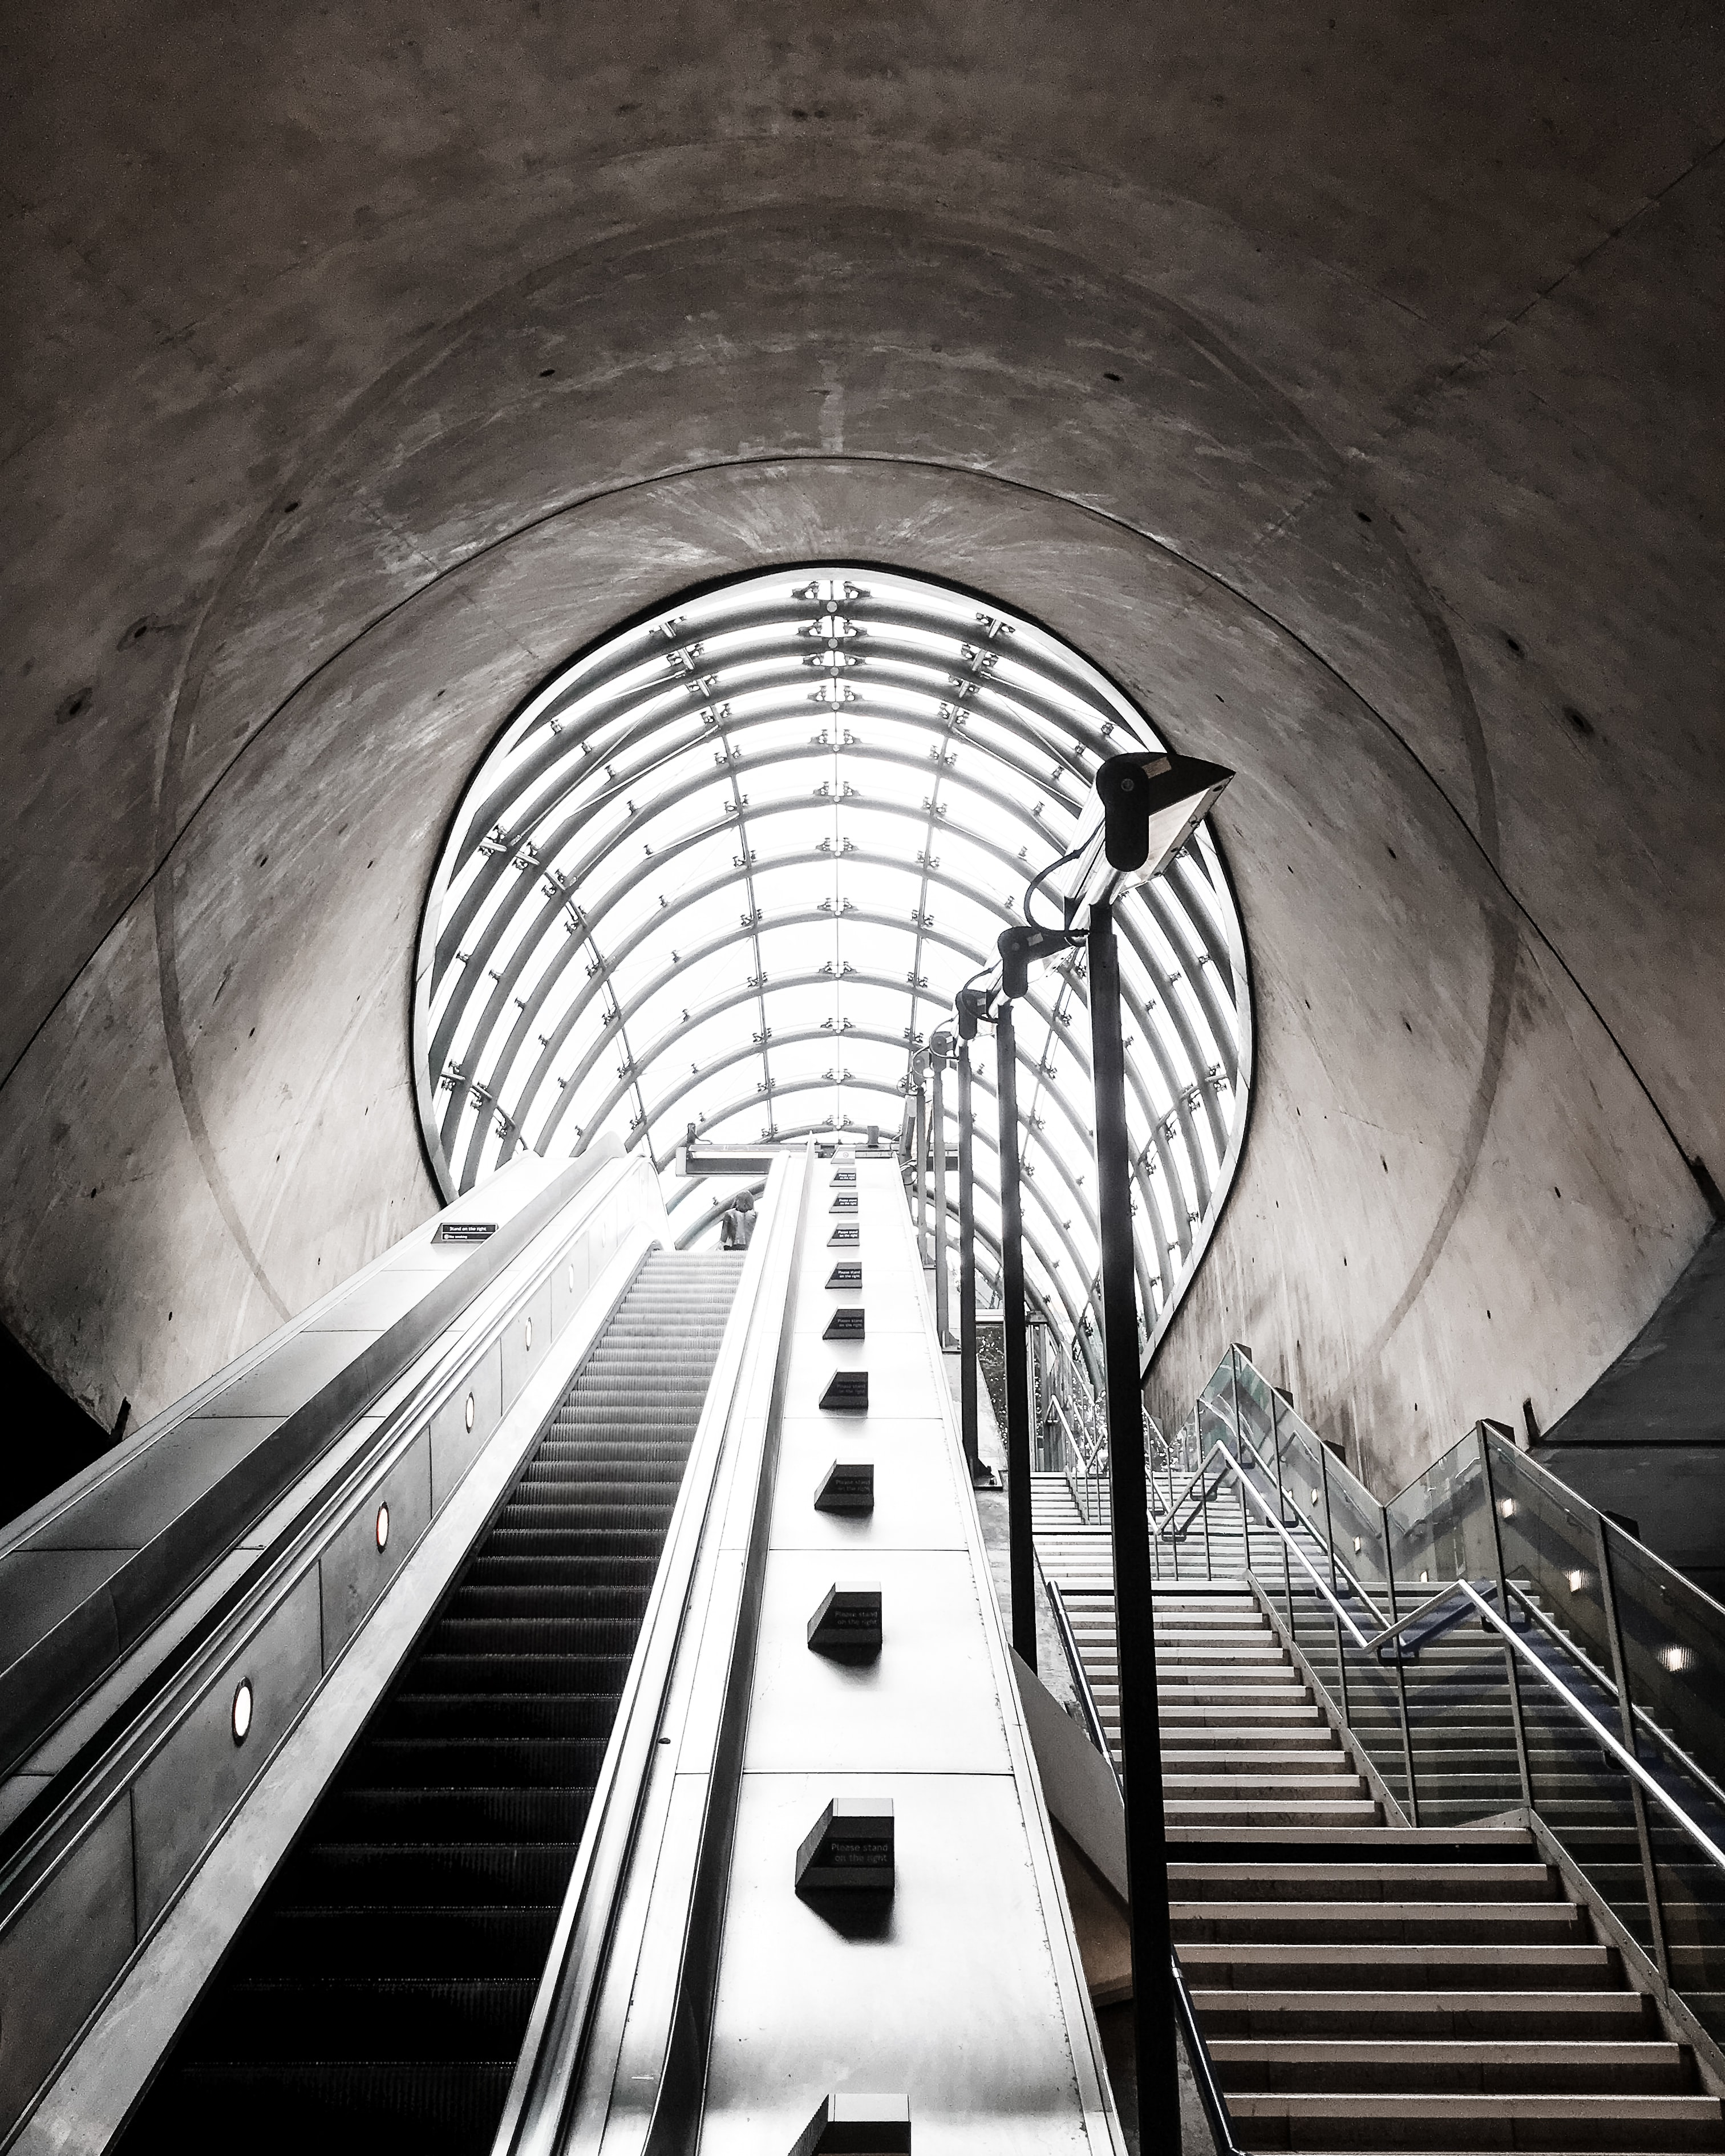 architectural photography of stairs beside escalator